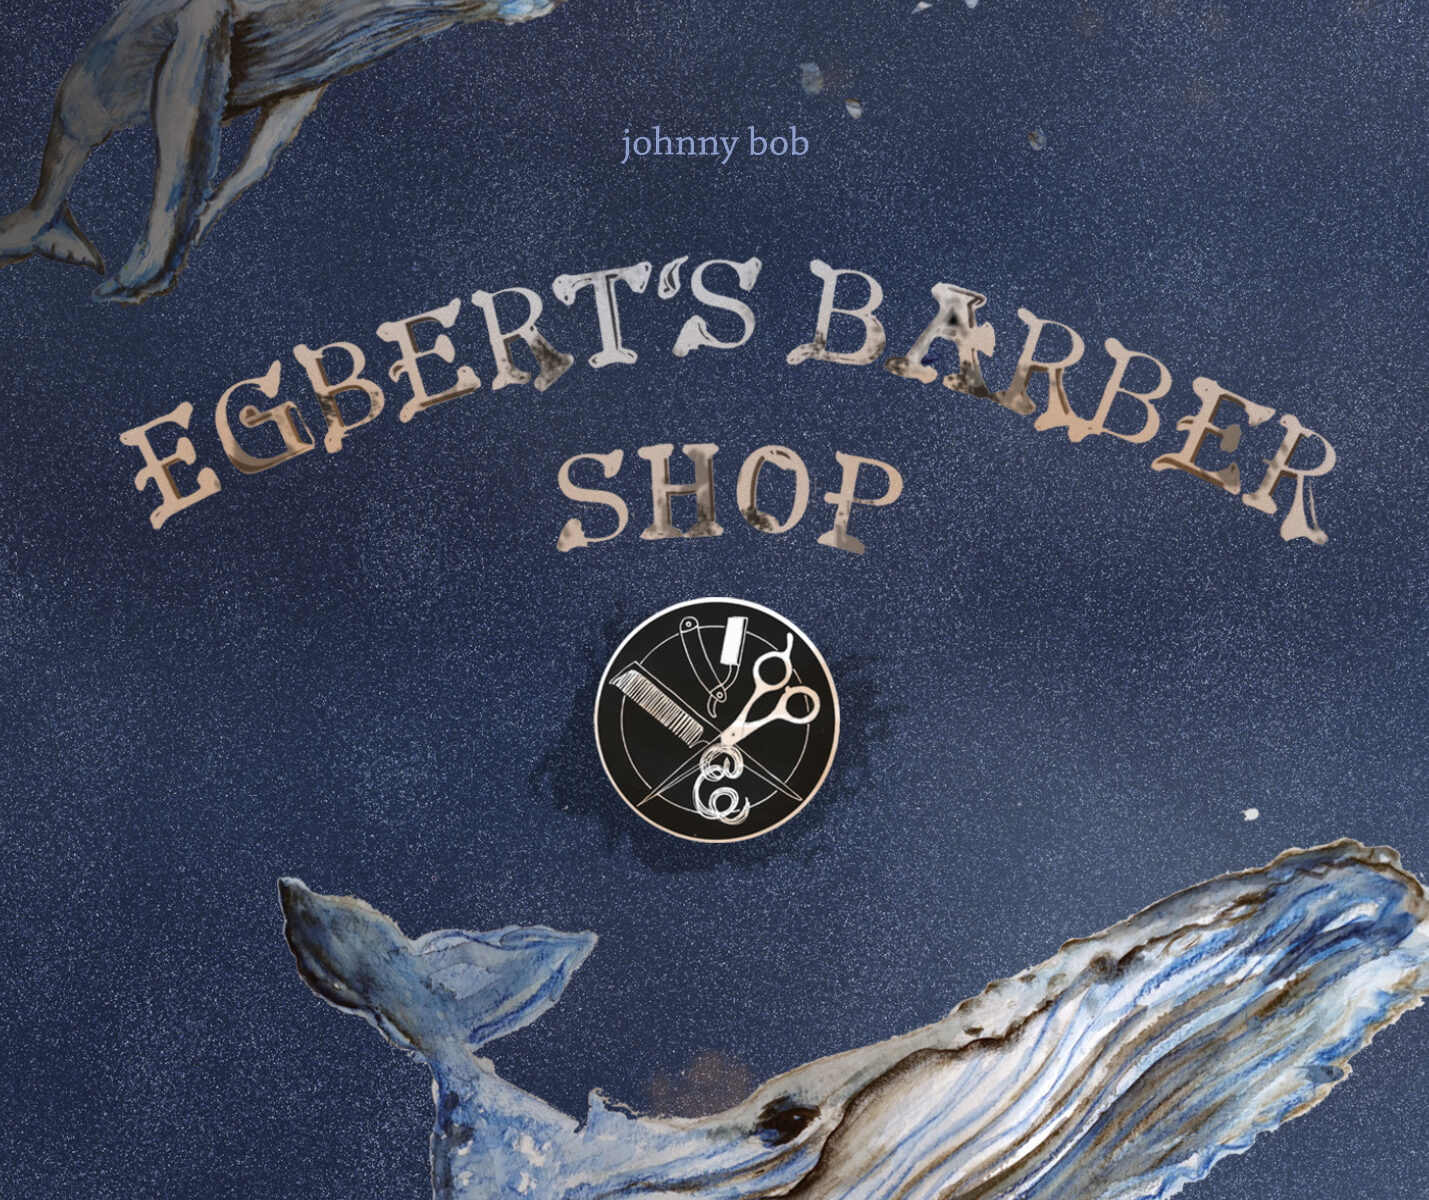 Johnny Bob - Egbert's Barber Shop